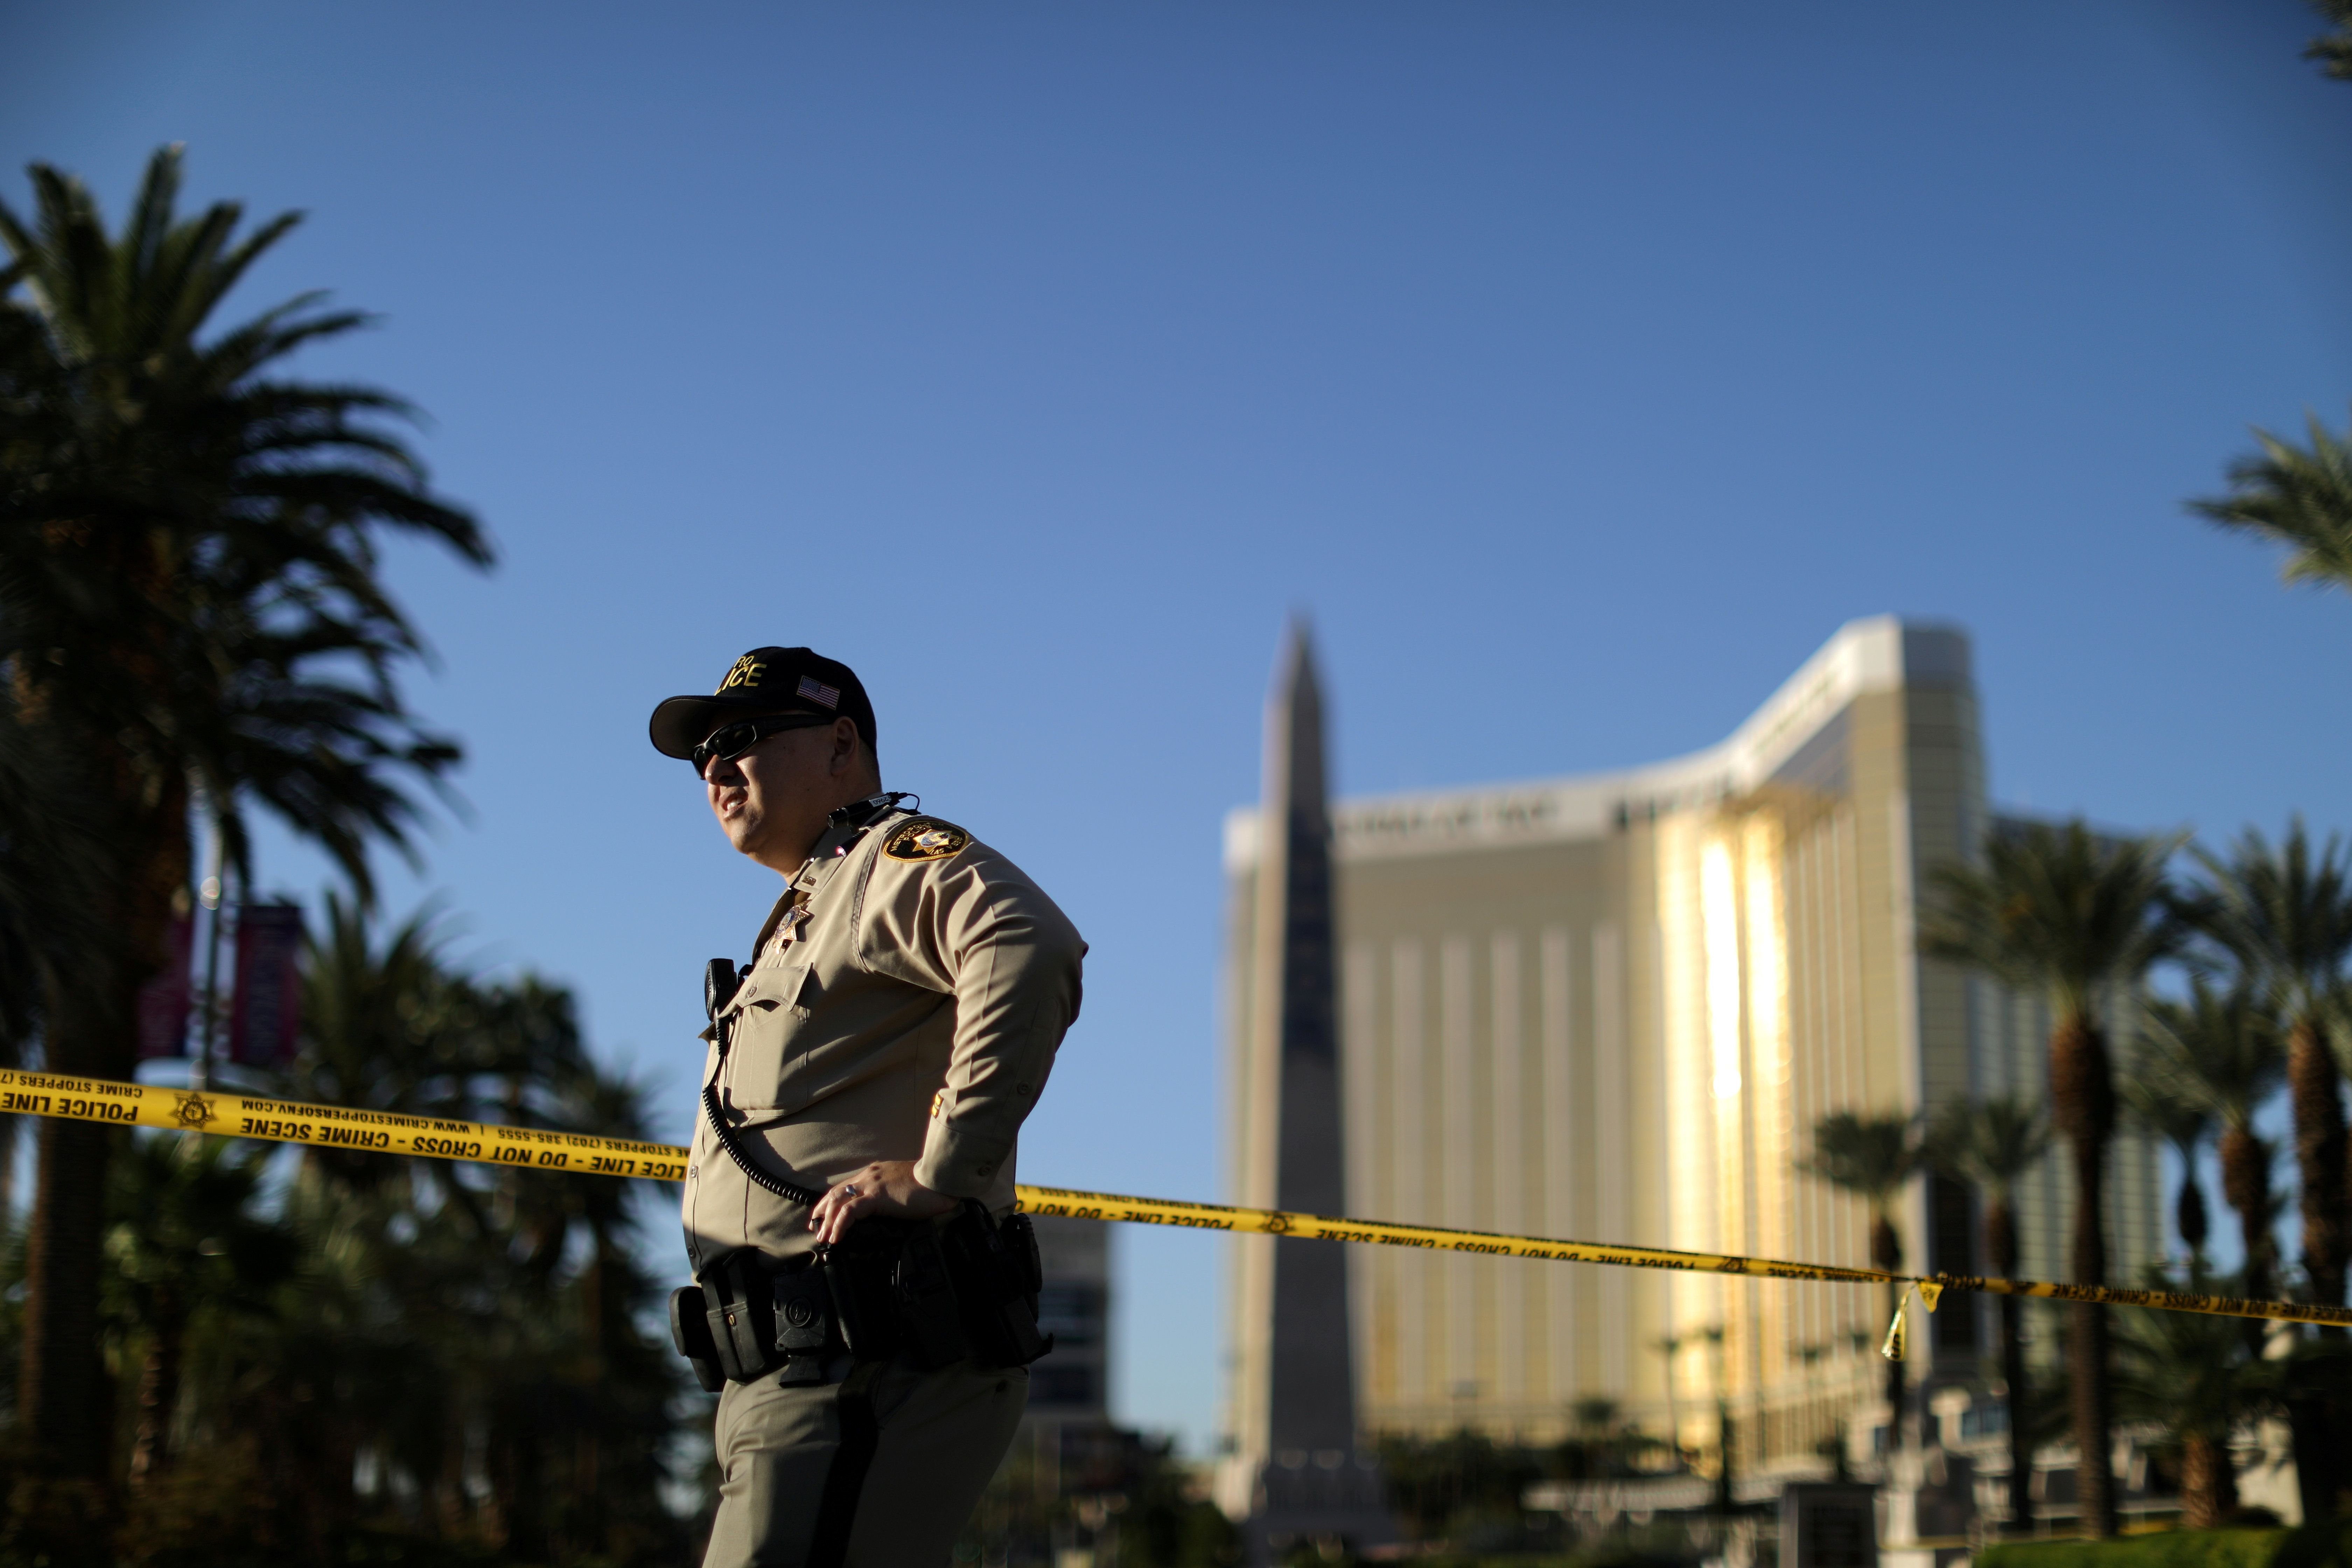 A police officer stands in front of the closed Las Vegas Strip next to the site of the Route 91 music festival mass shooting outside the Mandalay Bay Resort and Casino in Las Vegas, Nevada, U.S., October 3, 2017. REUTERS/Lucy Nicholson